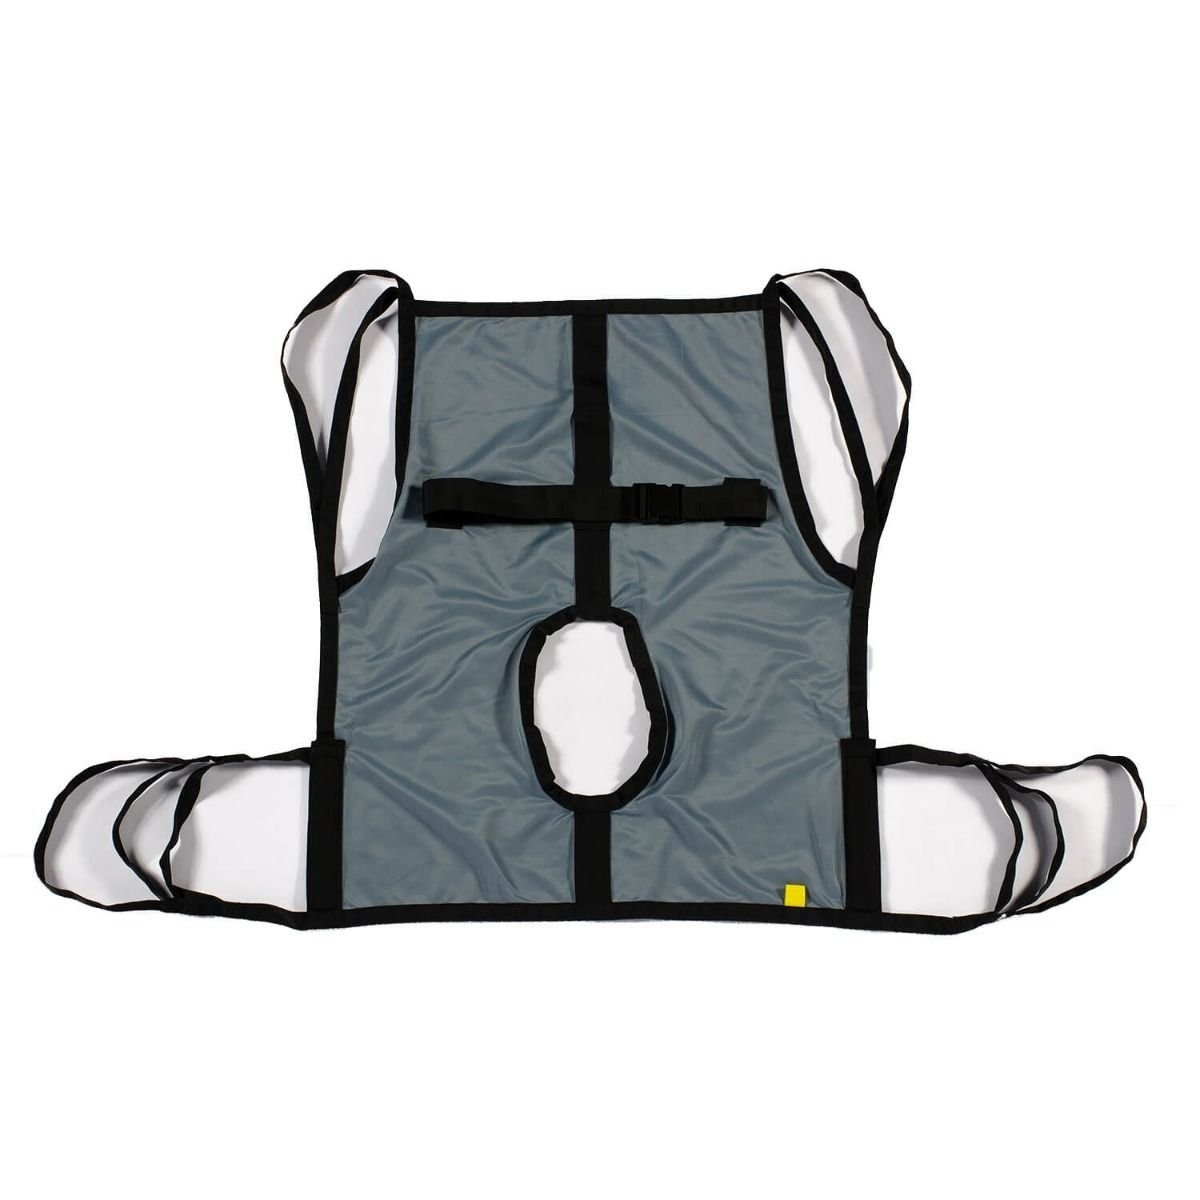 One Piece Commode Patient Lift Sling with Positioning Strap, Full Body 600lb Capacity (Small) by Patient Aid